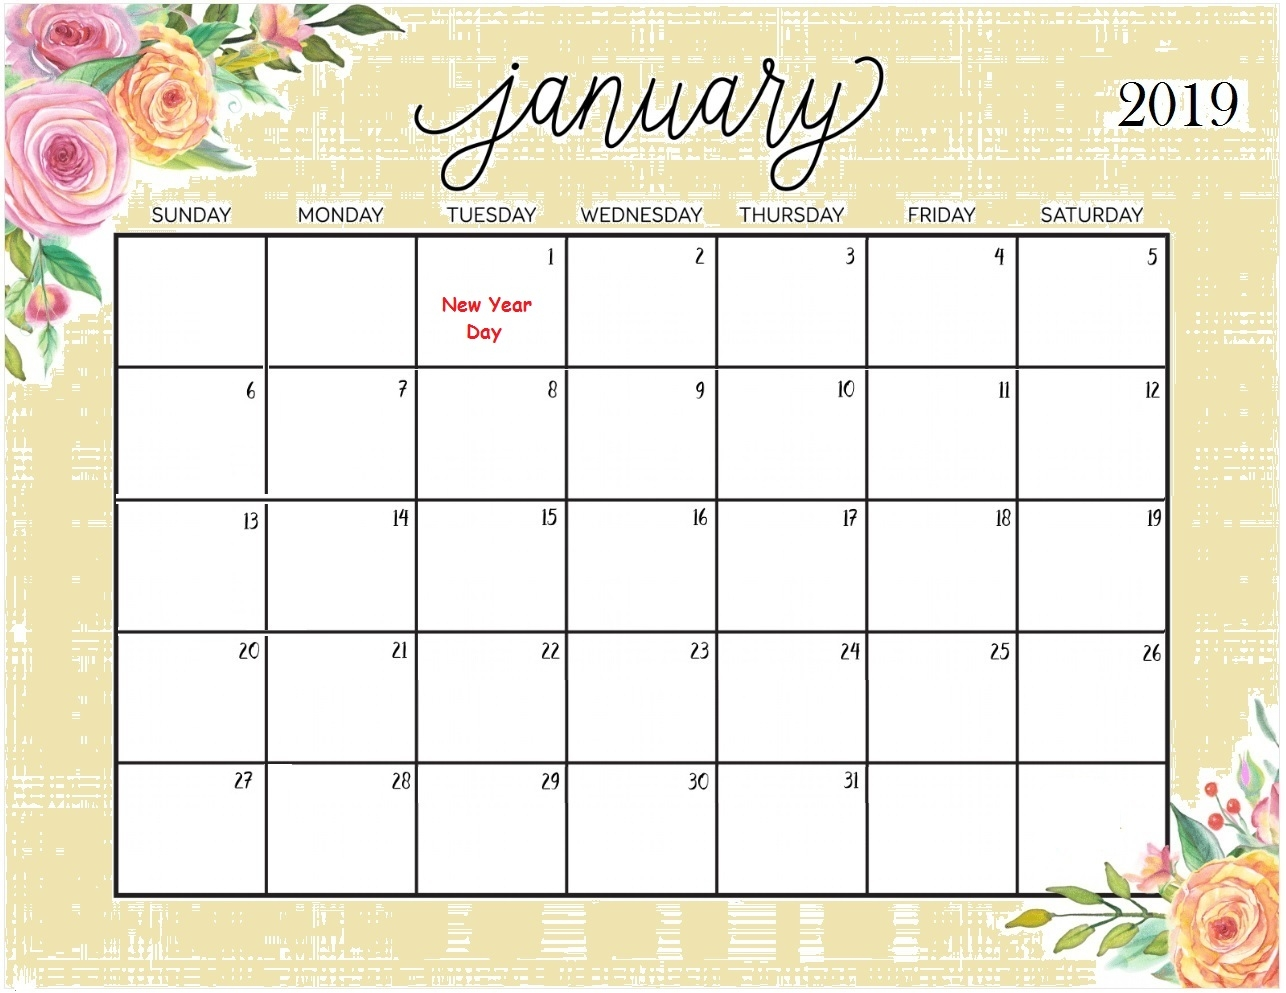 january 2019 calendar quarters calendar template printable::January 2019 Calendar Templates